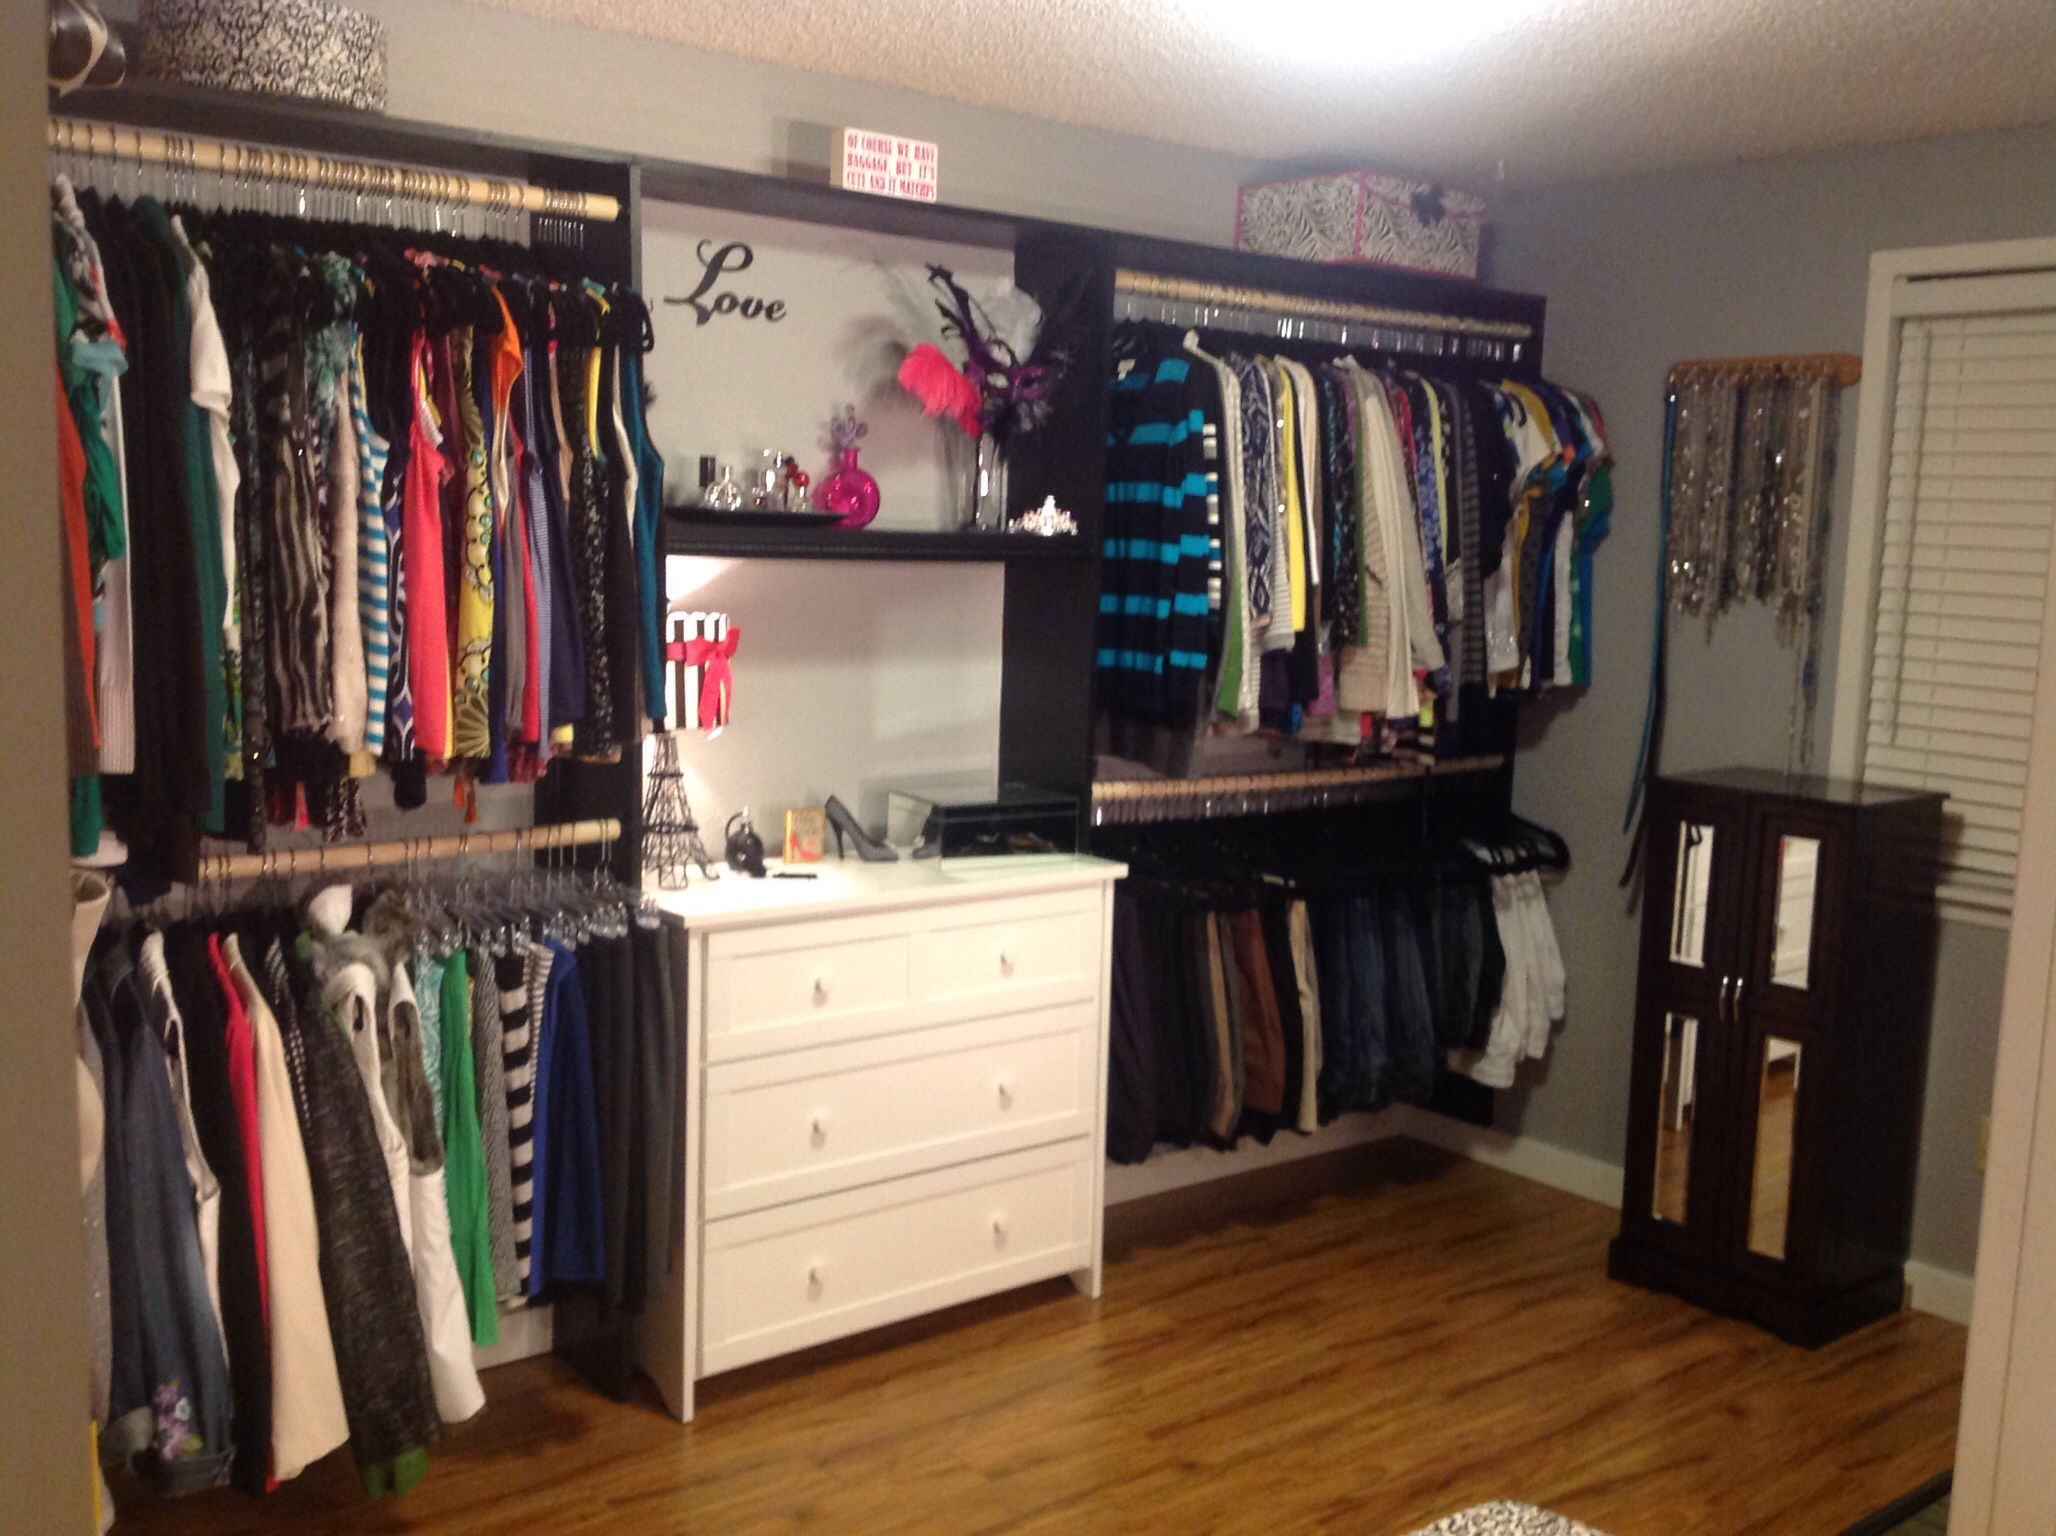 Turned a spare room into a closet. How to turn a spare bedroom into a dressing room or walk in closet